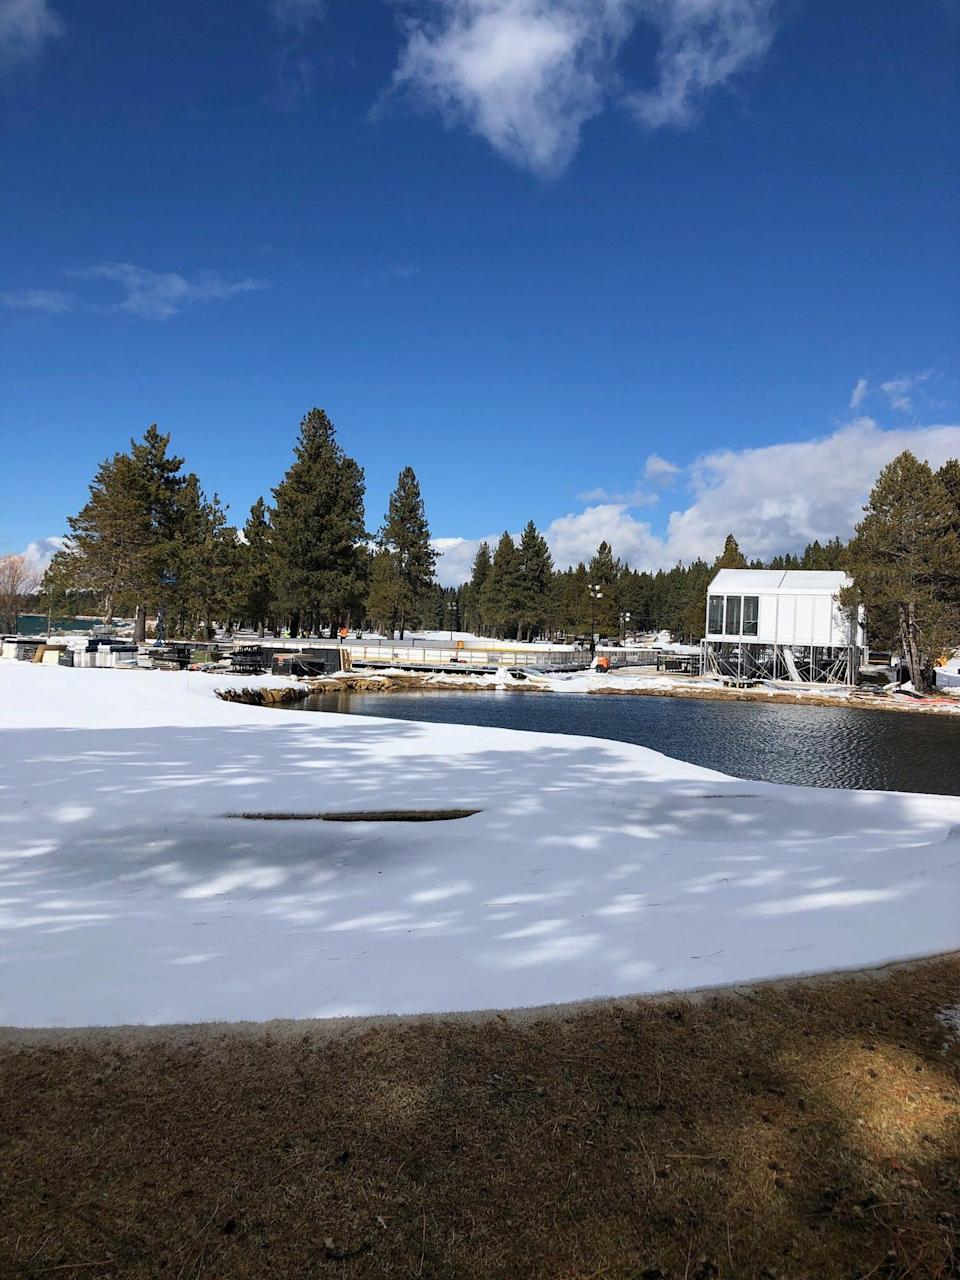 After a snow-filled winter, the golf course normally opens in early May, grounds director Brad Wunderlich said.